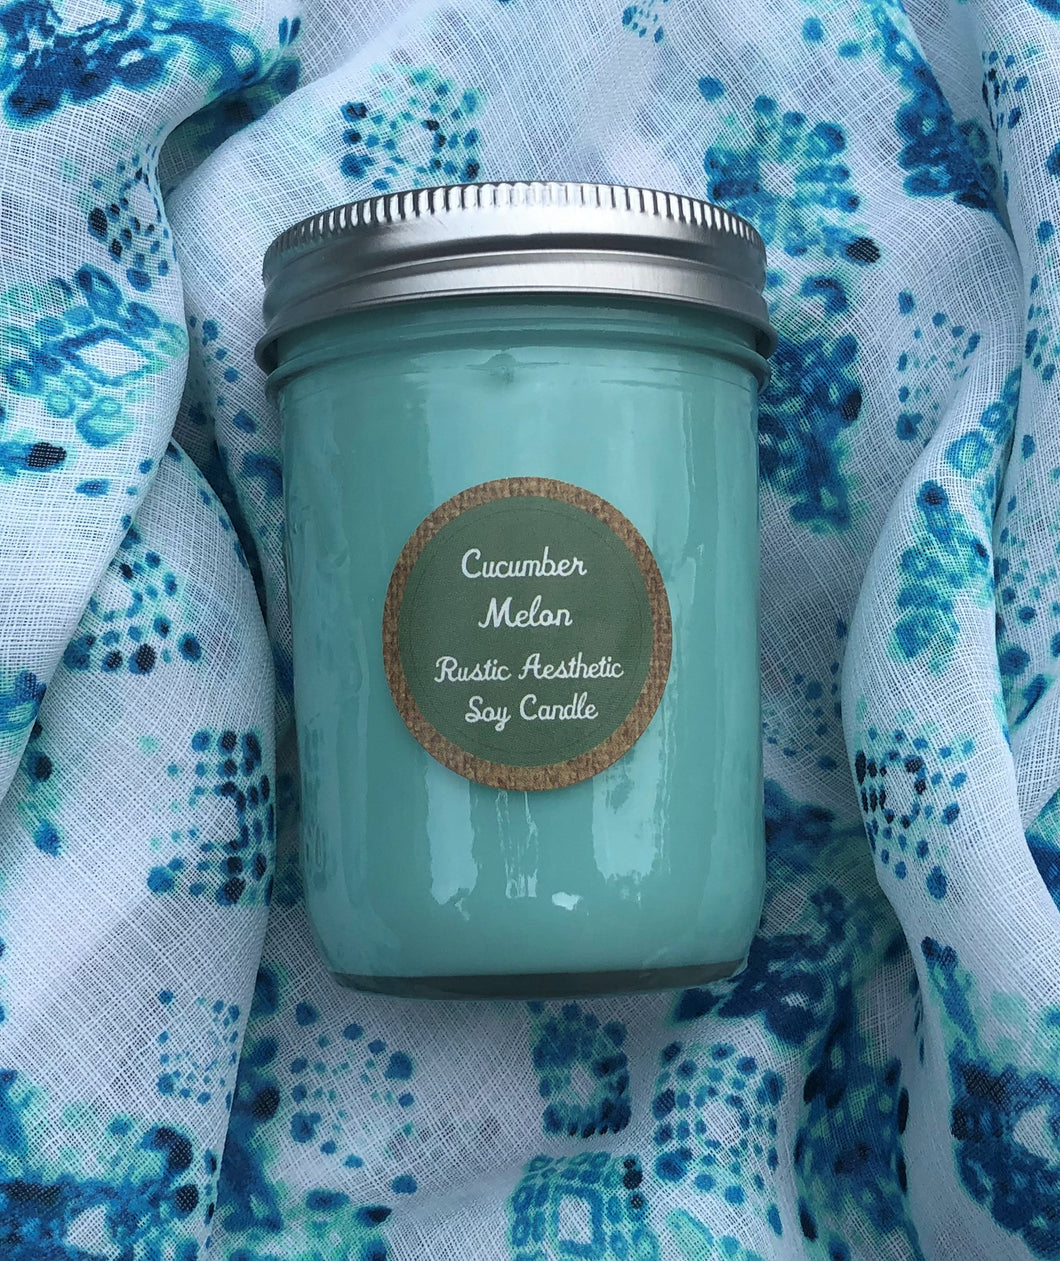 Cucumber Melon Soy Candle in an Iconic Mason Jar